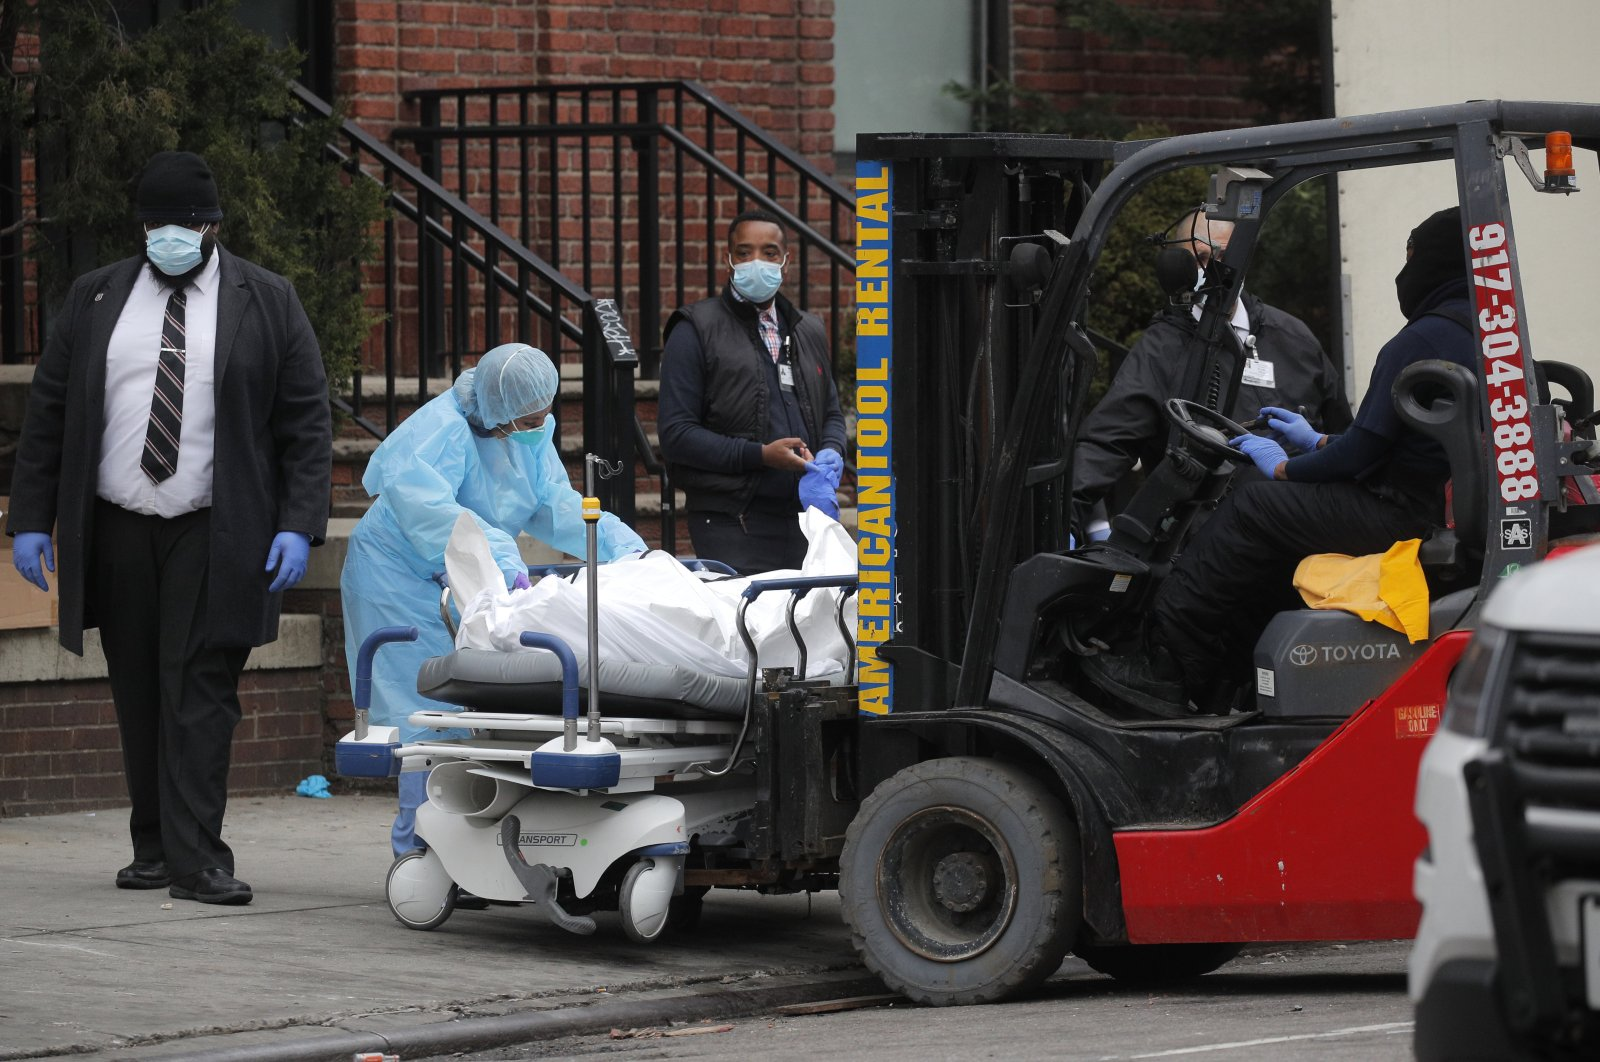 Workers prepare to load a deceased person into a trailer outside of Brooklyn Hospital Center during the coronavirus outbreak in the Brooklyn borough of New York City, New York, U.S., Monday, March 30, 2020. (Reuters Photo)